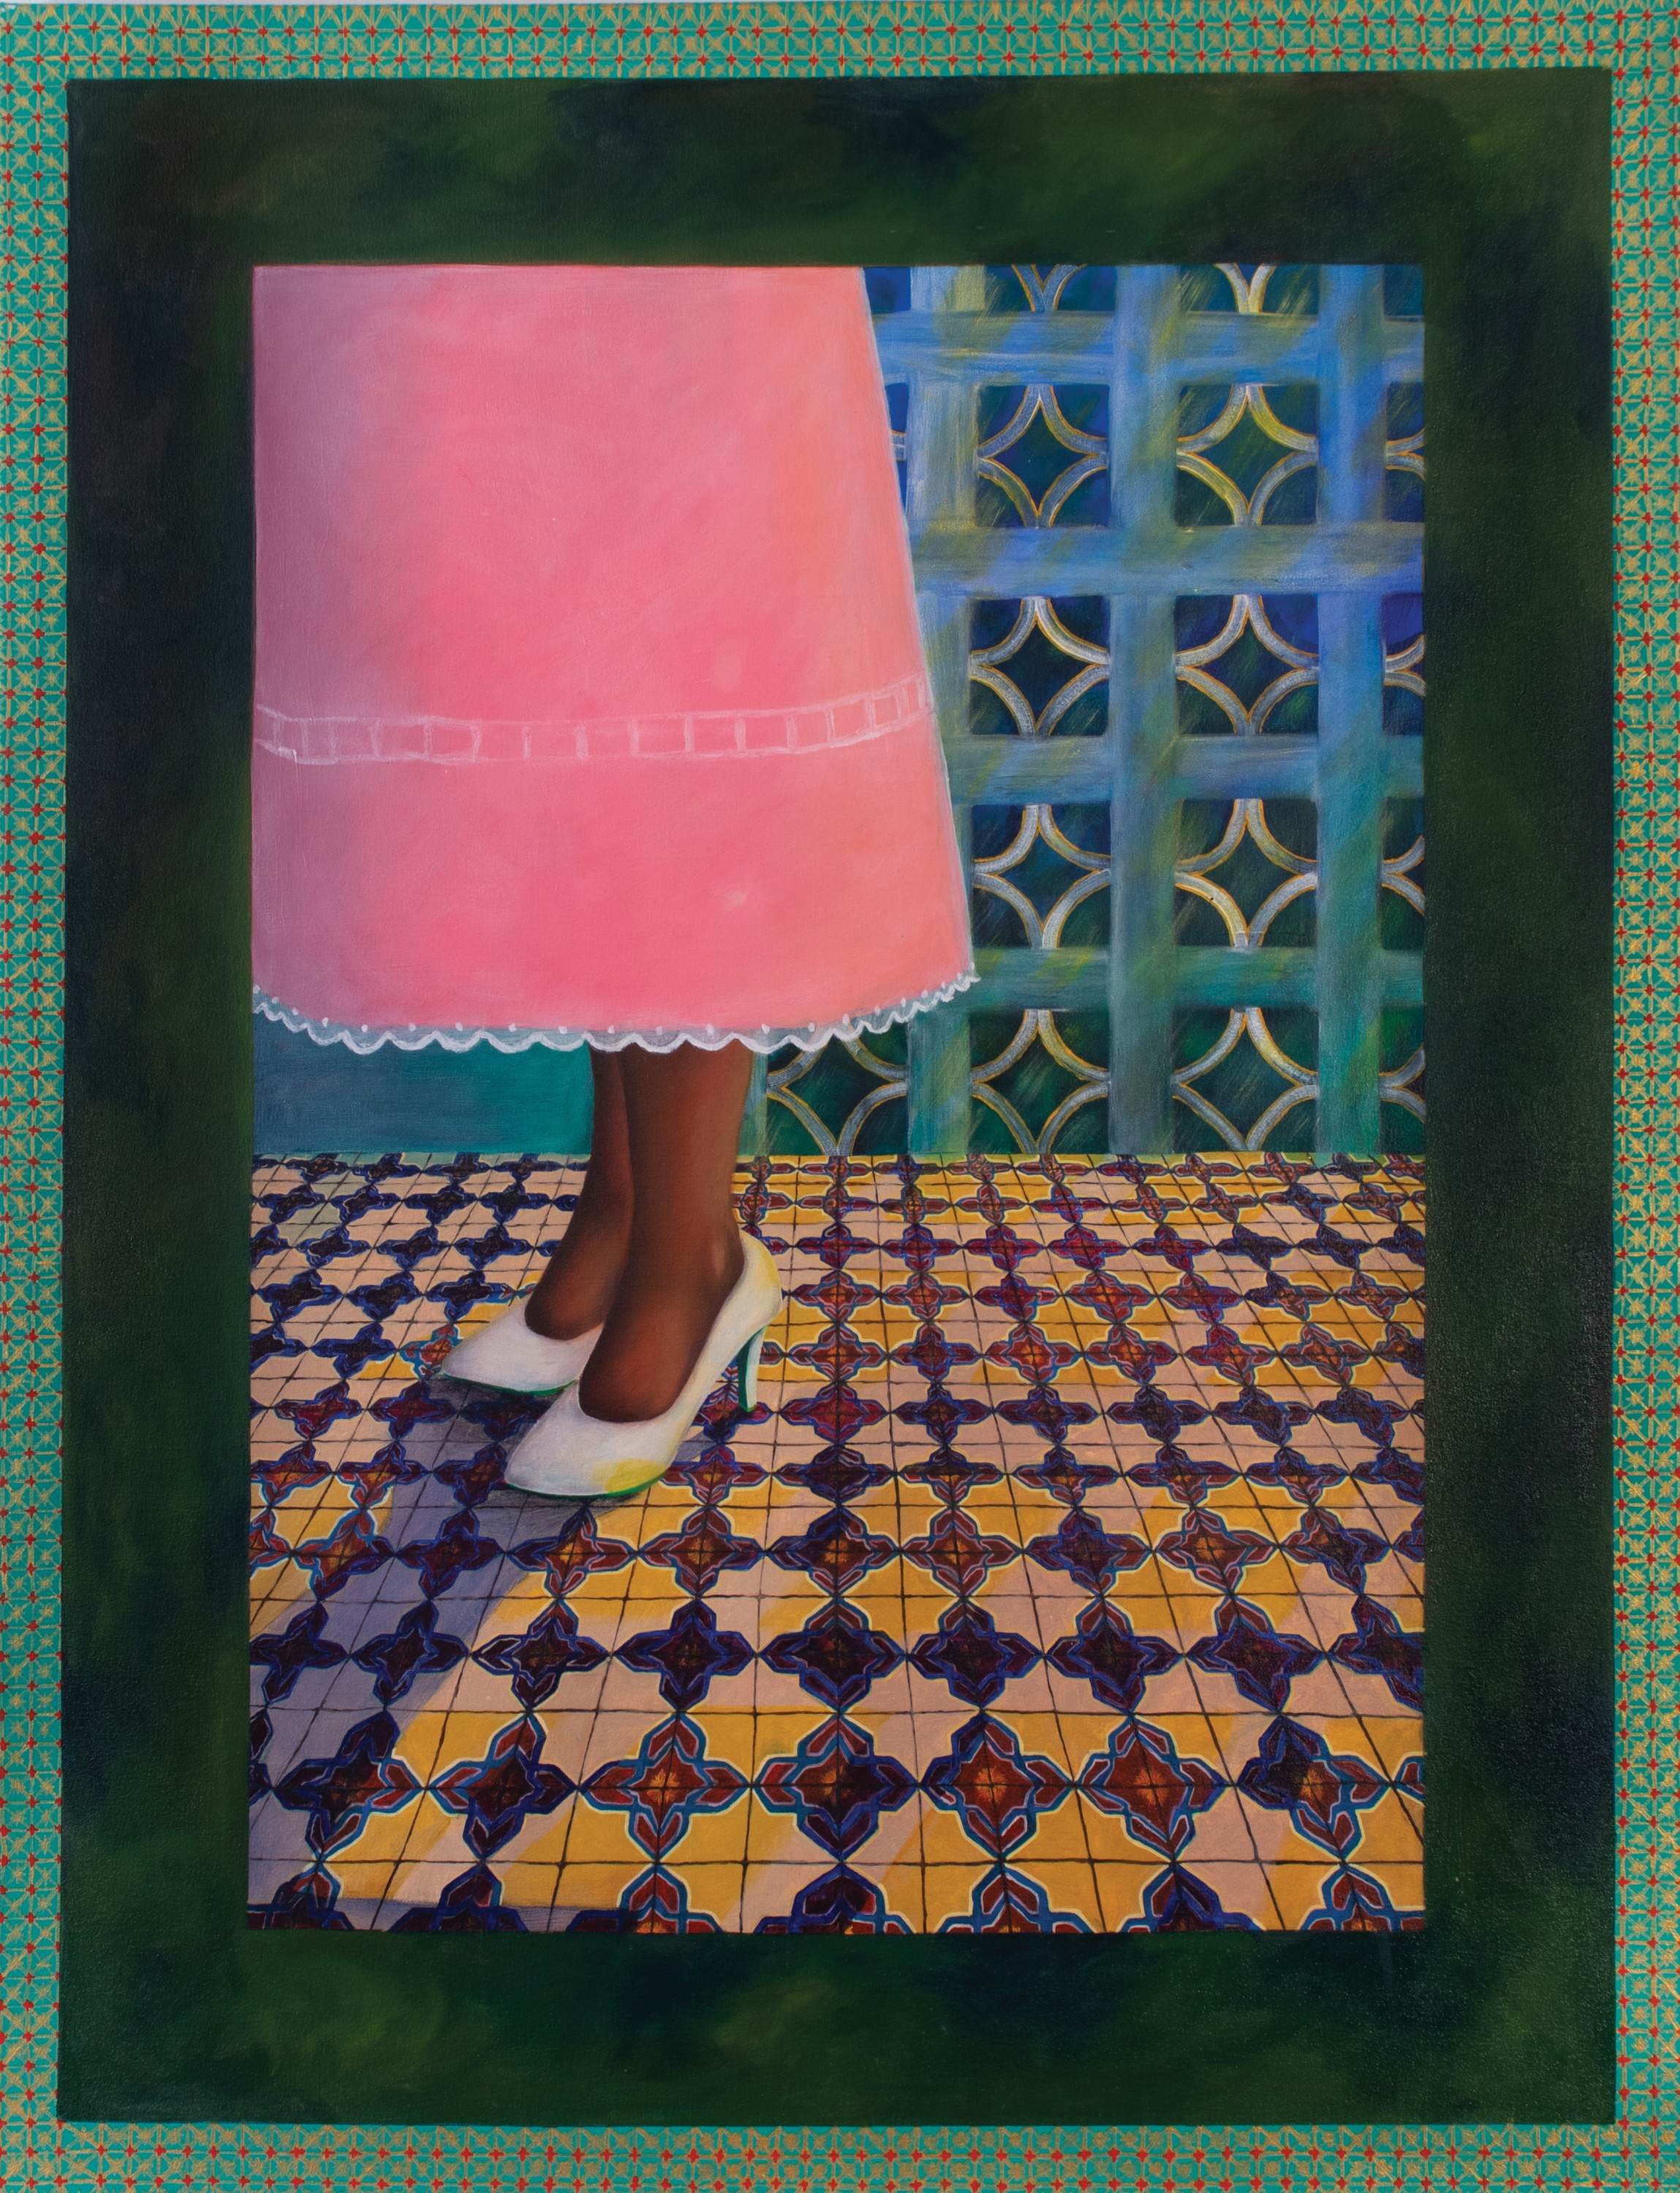 Irizarry is a painting made with oil and acrylic. At first glance, it is a painting of a woman in a pink dress standing on a decorative tile. The painting consists of three sections, an outer frame, a second frame, and the depiction of the woman. The oute